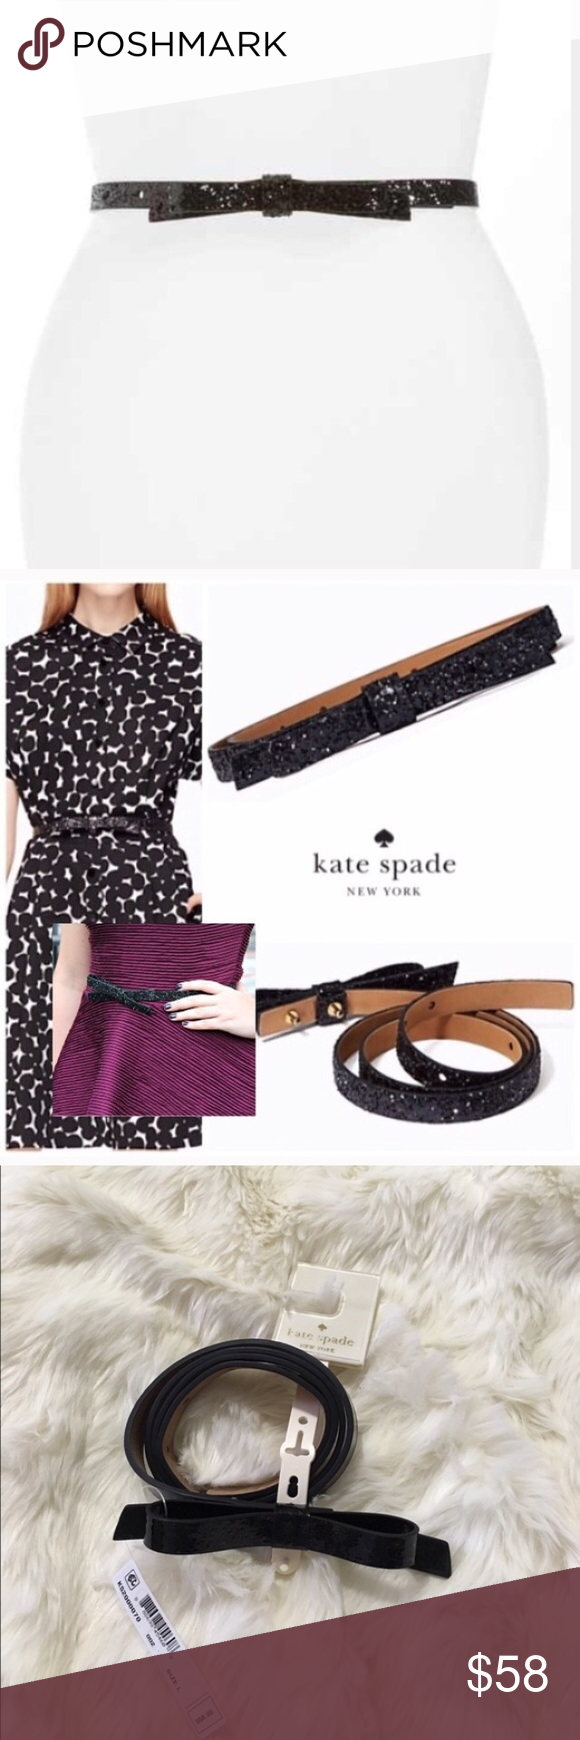 Large Kate Spade Black Skinny Bow Belt Nwt. Fast Shipping. kate spade Accessories Belts